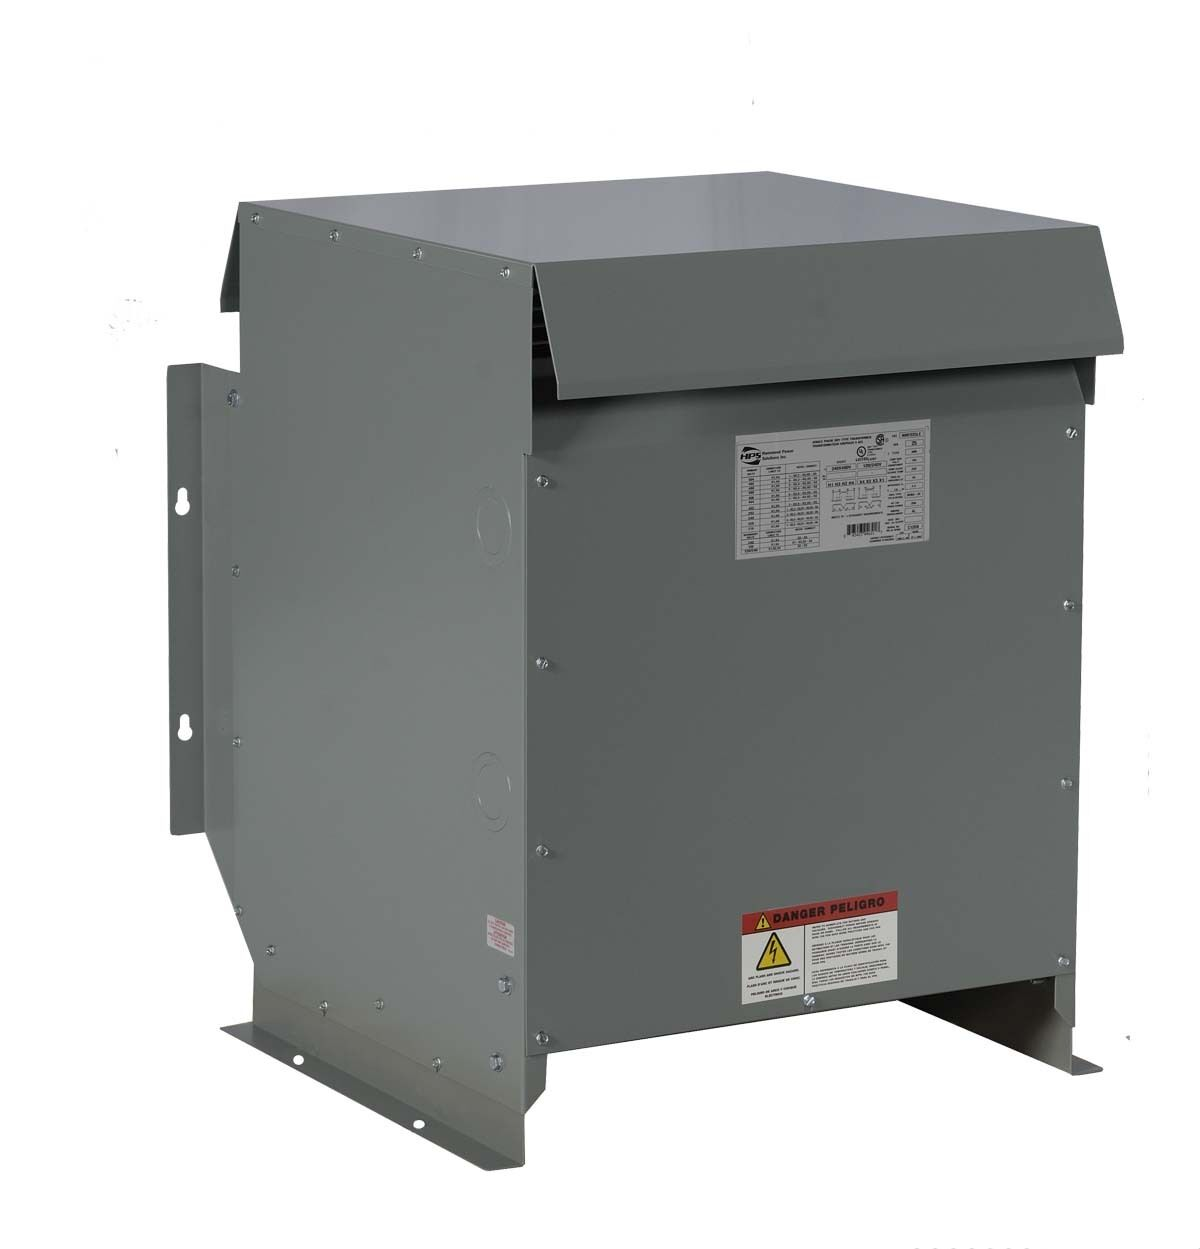 45kva dry type transformer 480 240 volt, 3 phase new, nema 3r  45kva dry type transformer 480 240 volt, 3 phase new, nema 3r enclosure